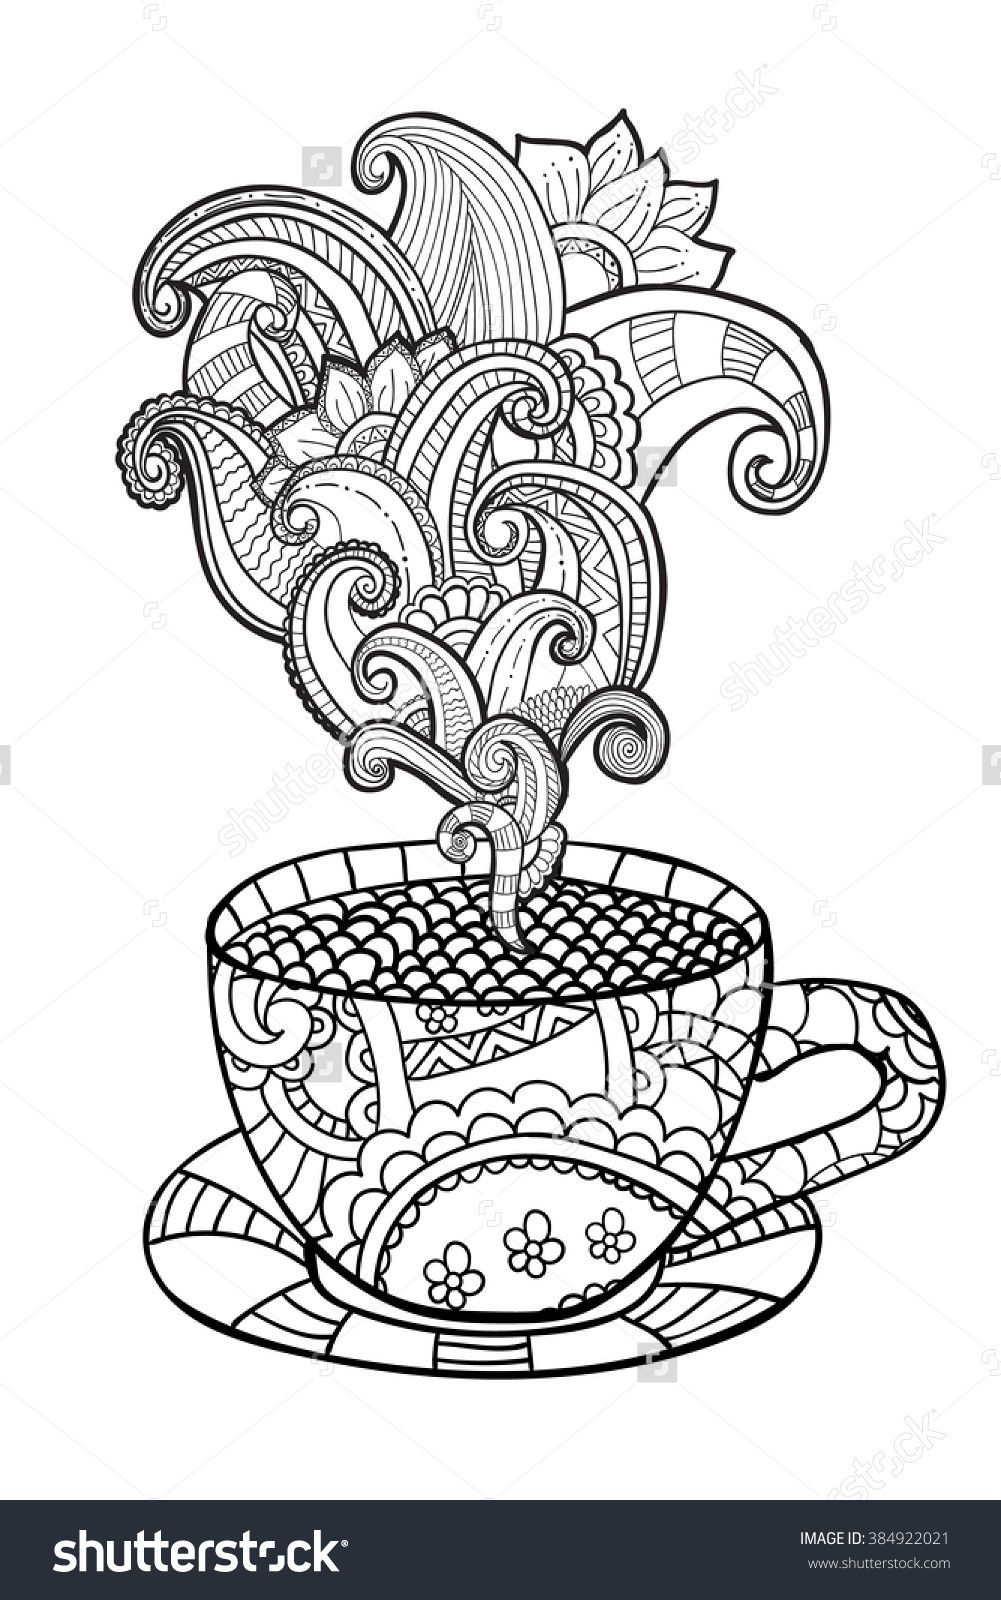 Coffee Or Tea Cup Zentangle Style Coloring Page 384922021 ...